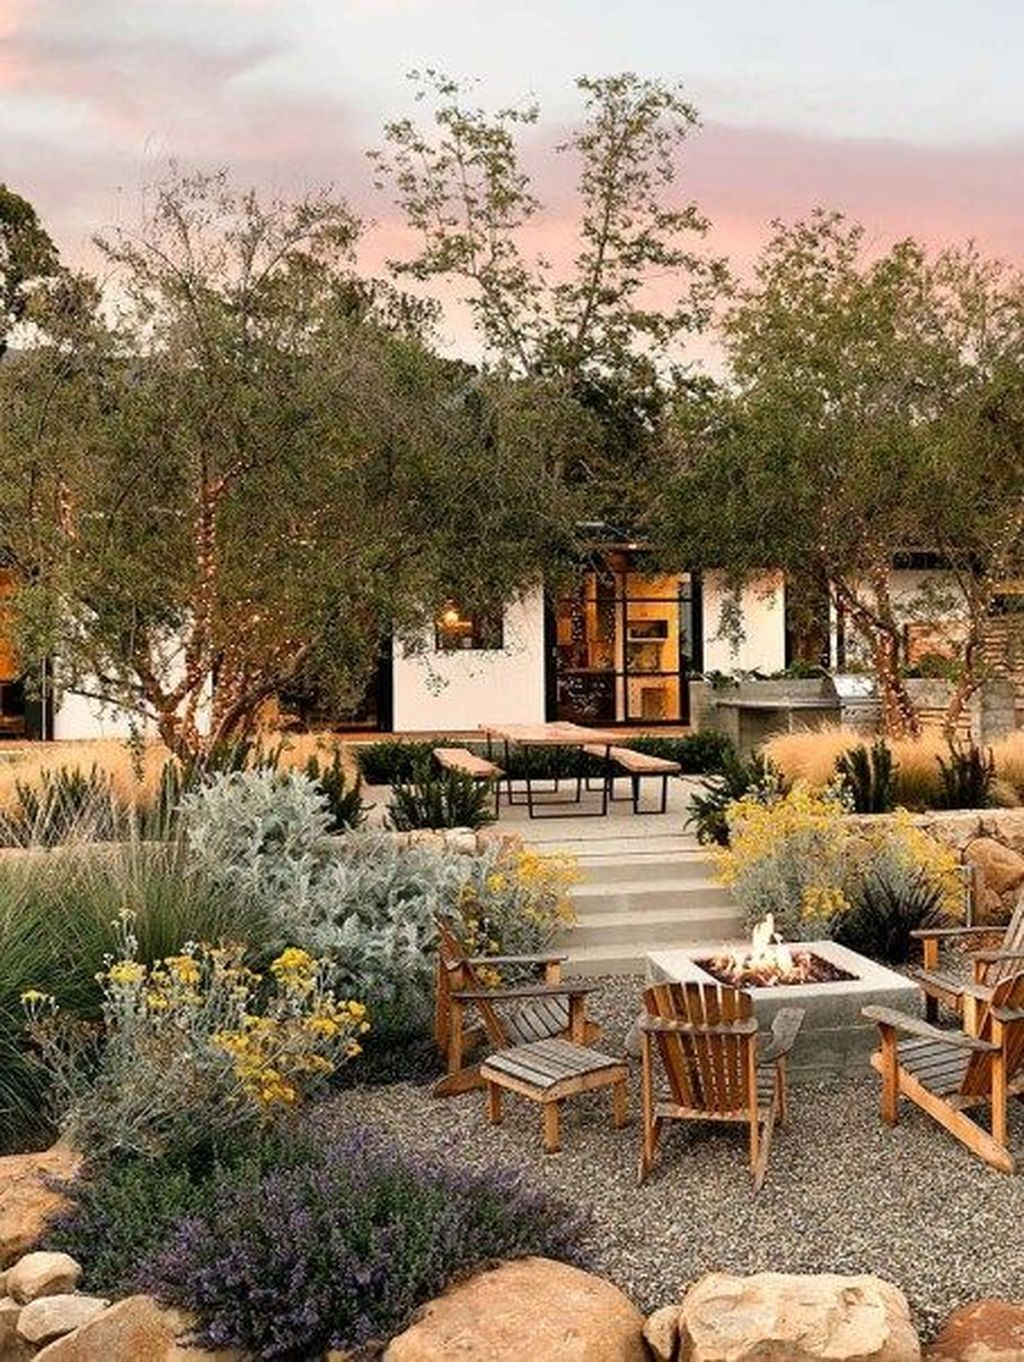 34 Hottest Outdoor Spaces And Decor Ideas That Brings A Cleaner Looks